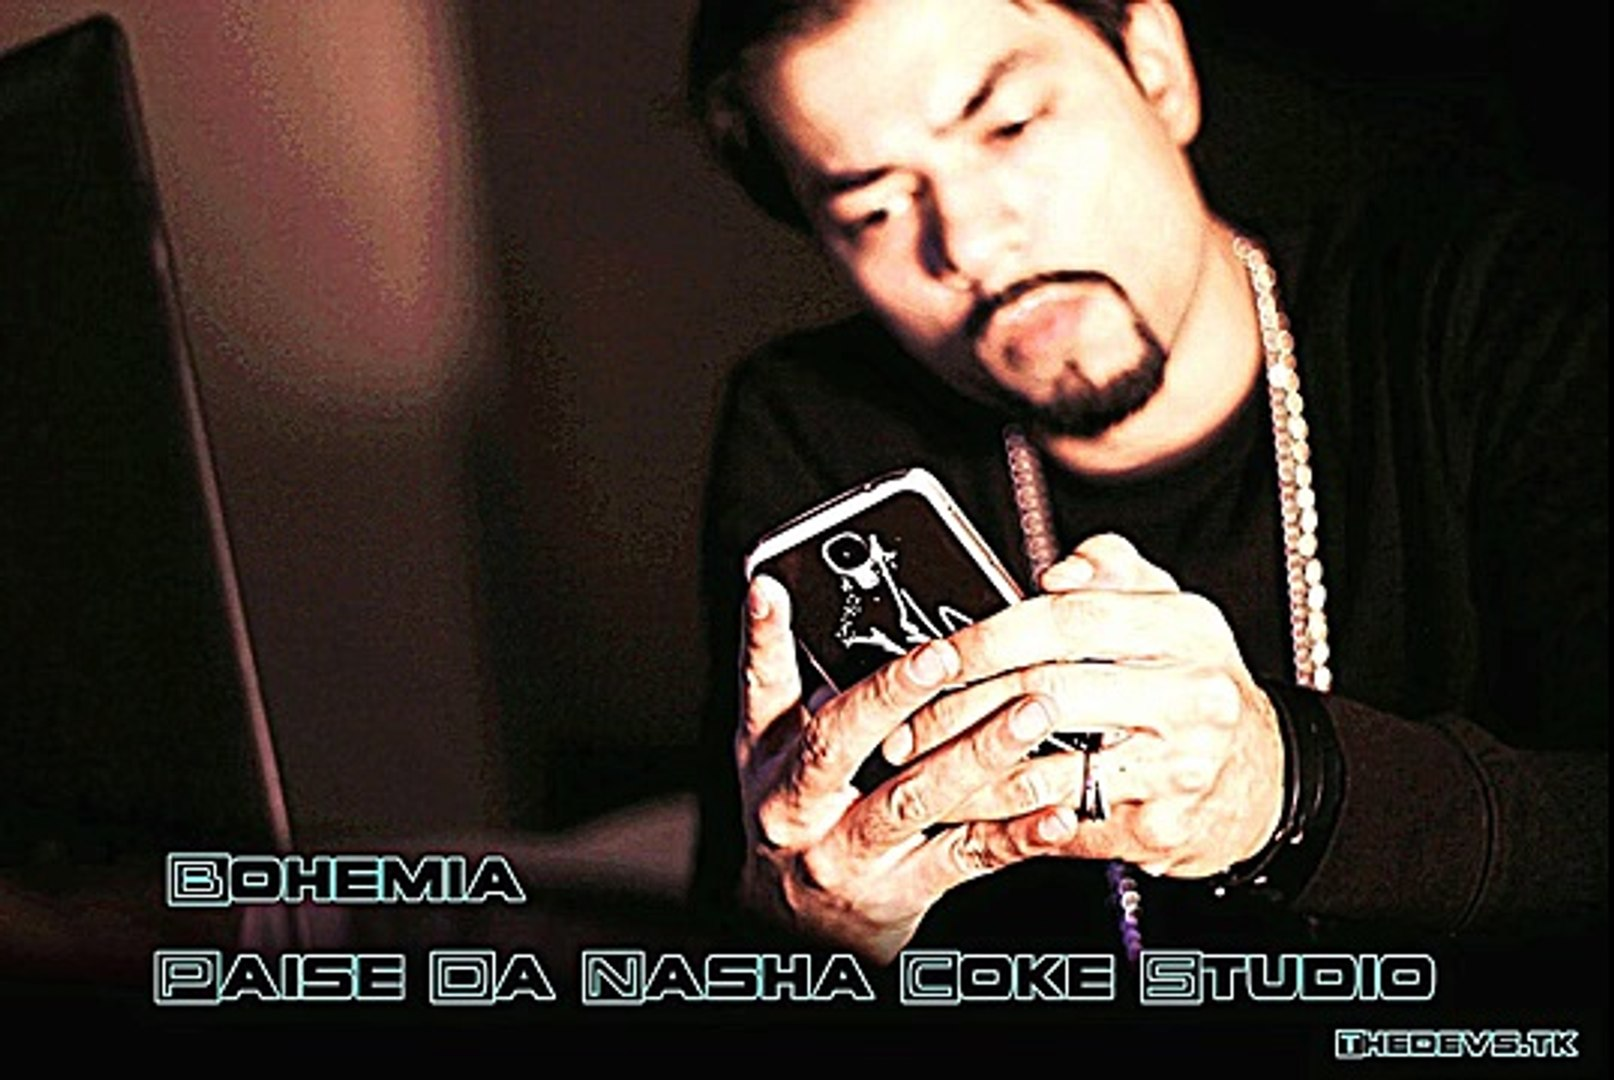 Paise Da Nasha bohemia new song 2015 top songs best songs new songs upcoming songs latest songs sad